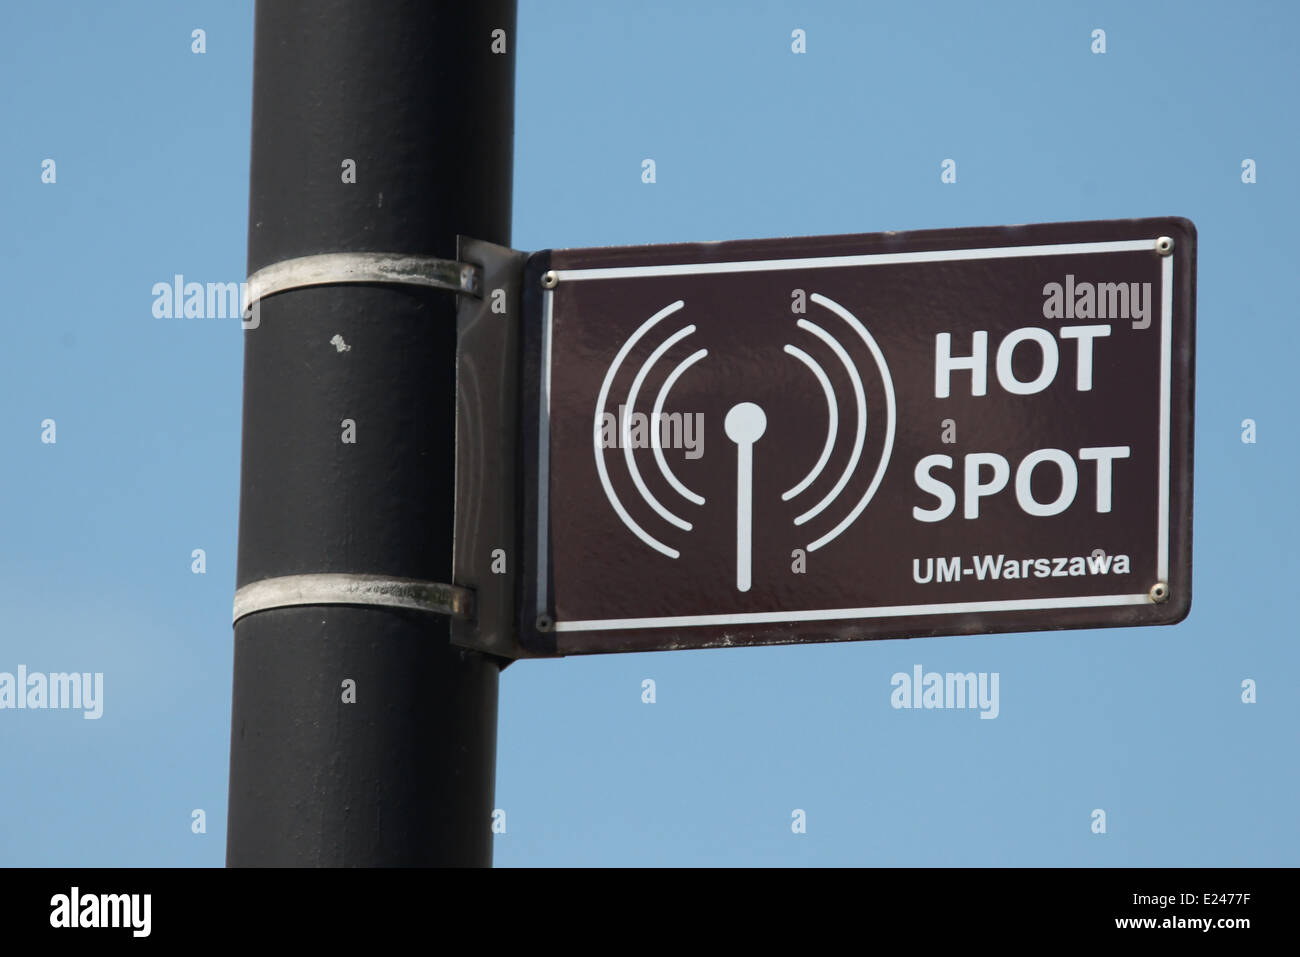 Internet Hot Spot Sign in Warsaw - Stock Image